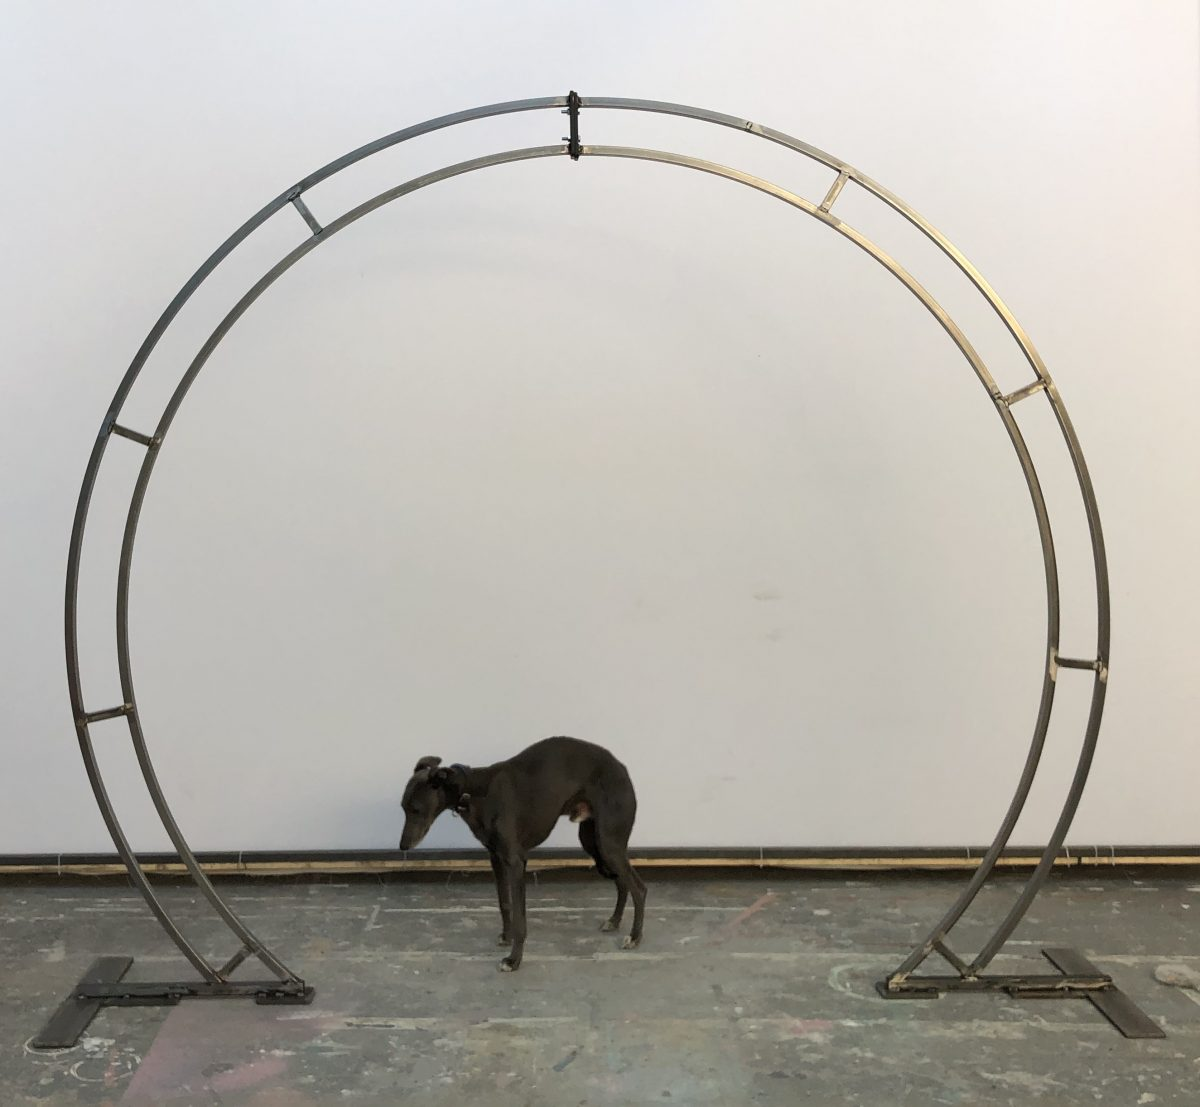 Julian Carter Design. 8' circular arch